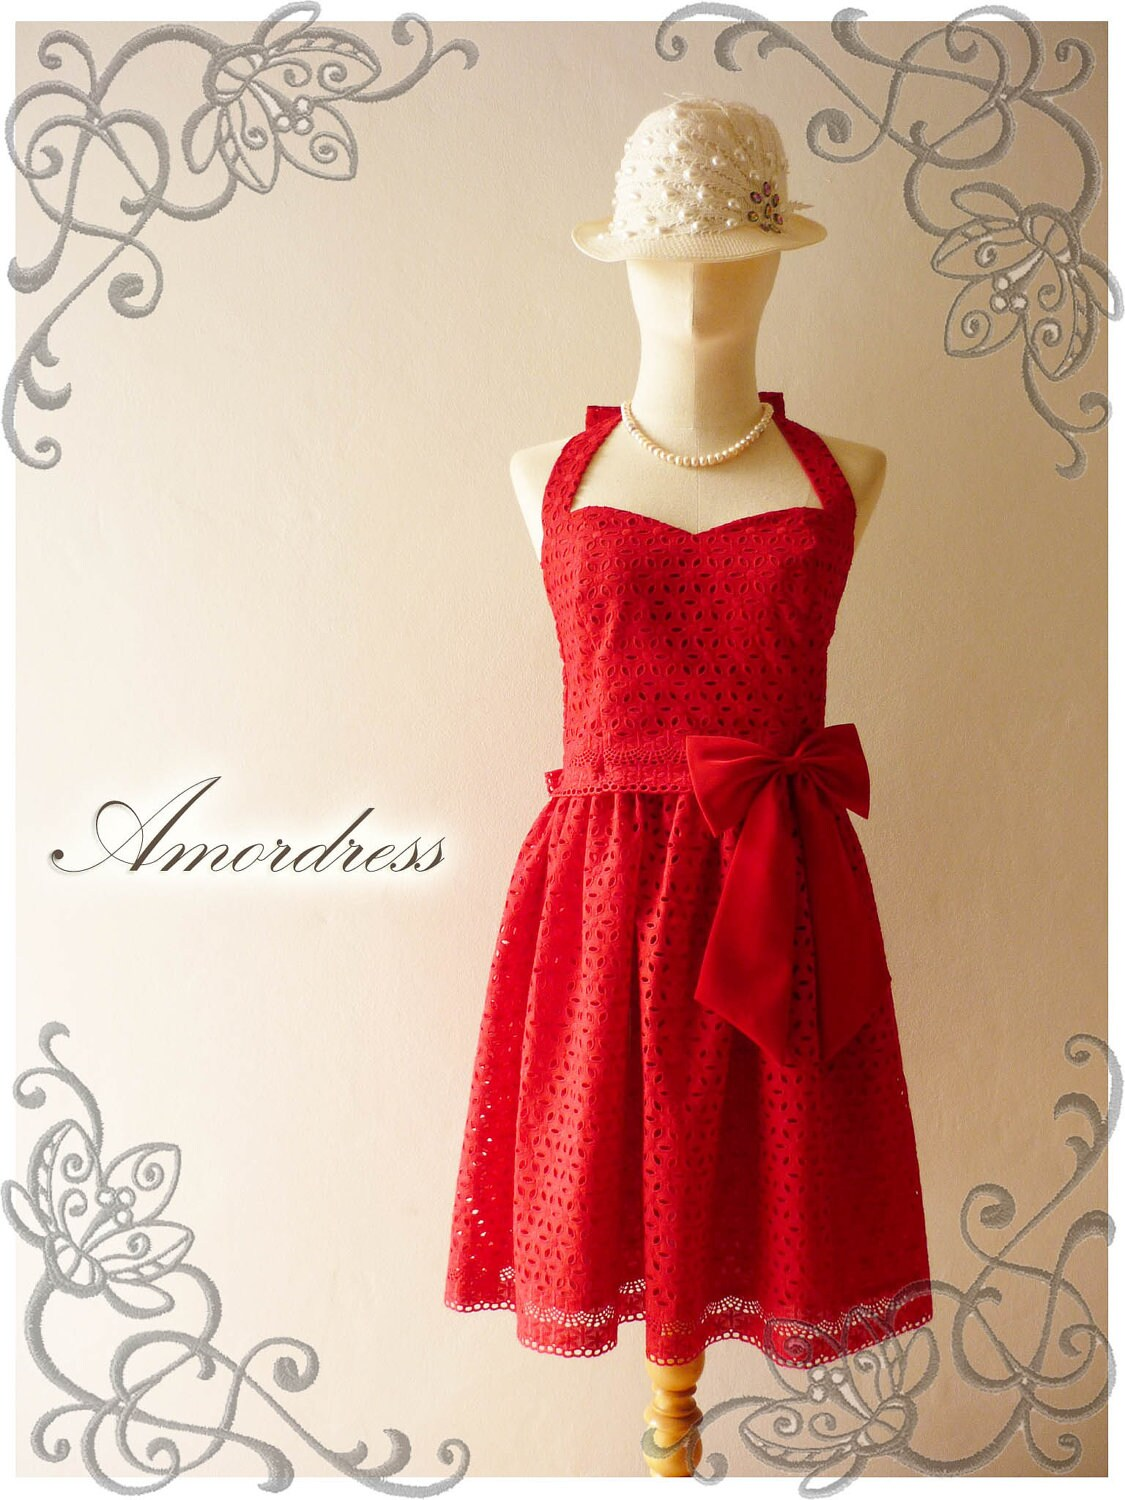 Red Dress Red Bridesmaid Dress Lace Dress Vintage by Amordress